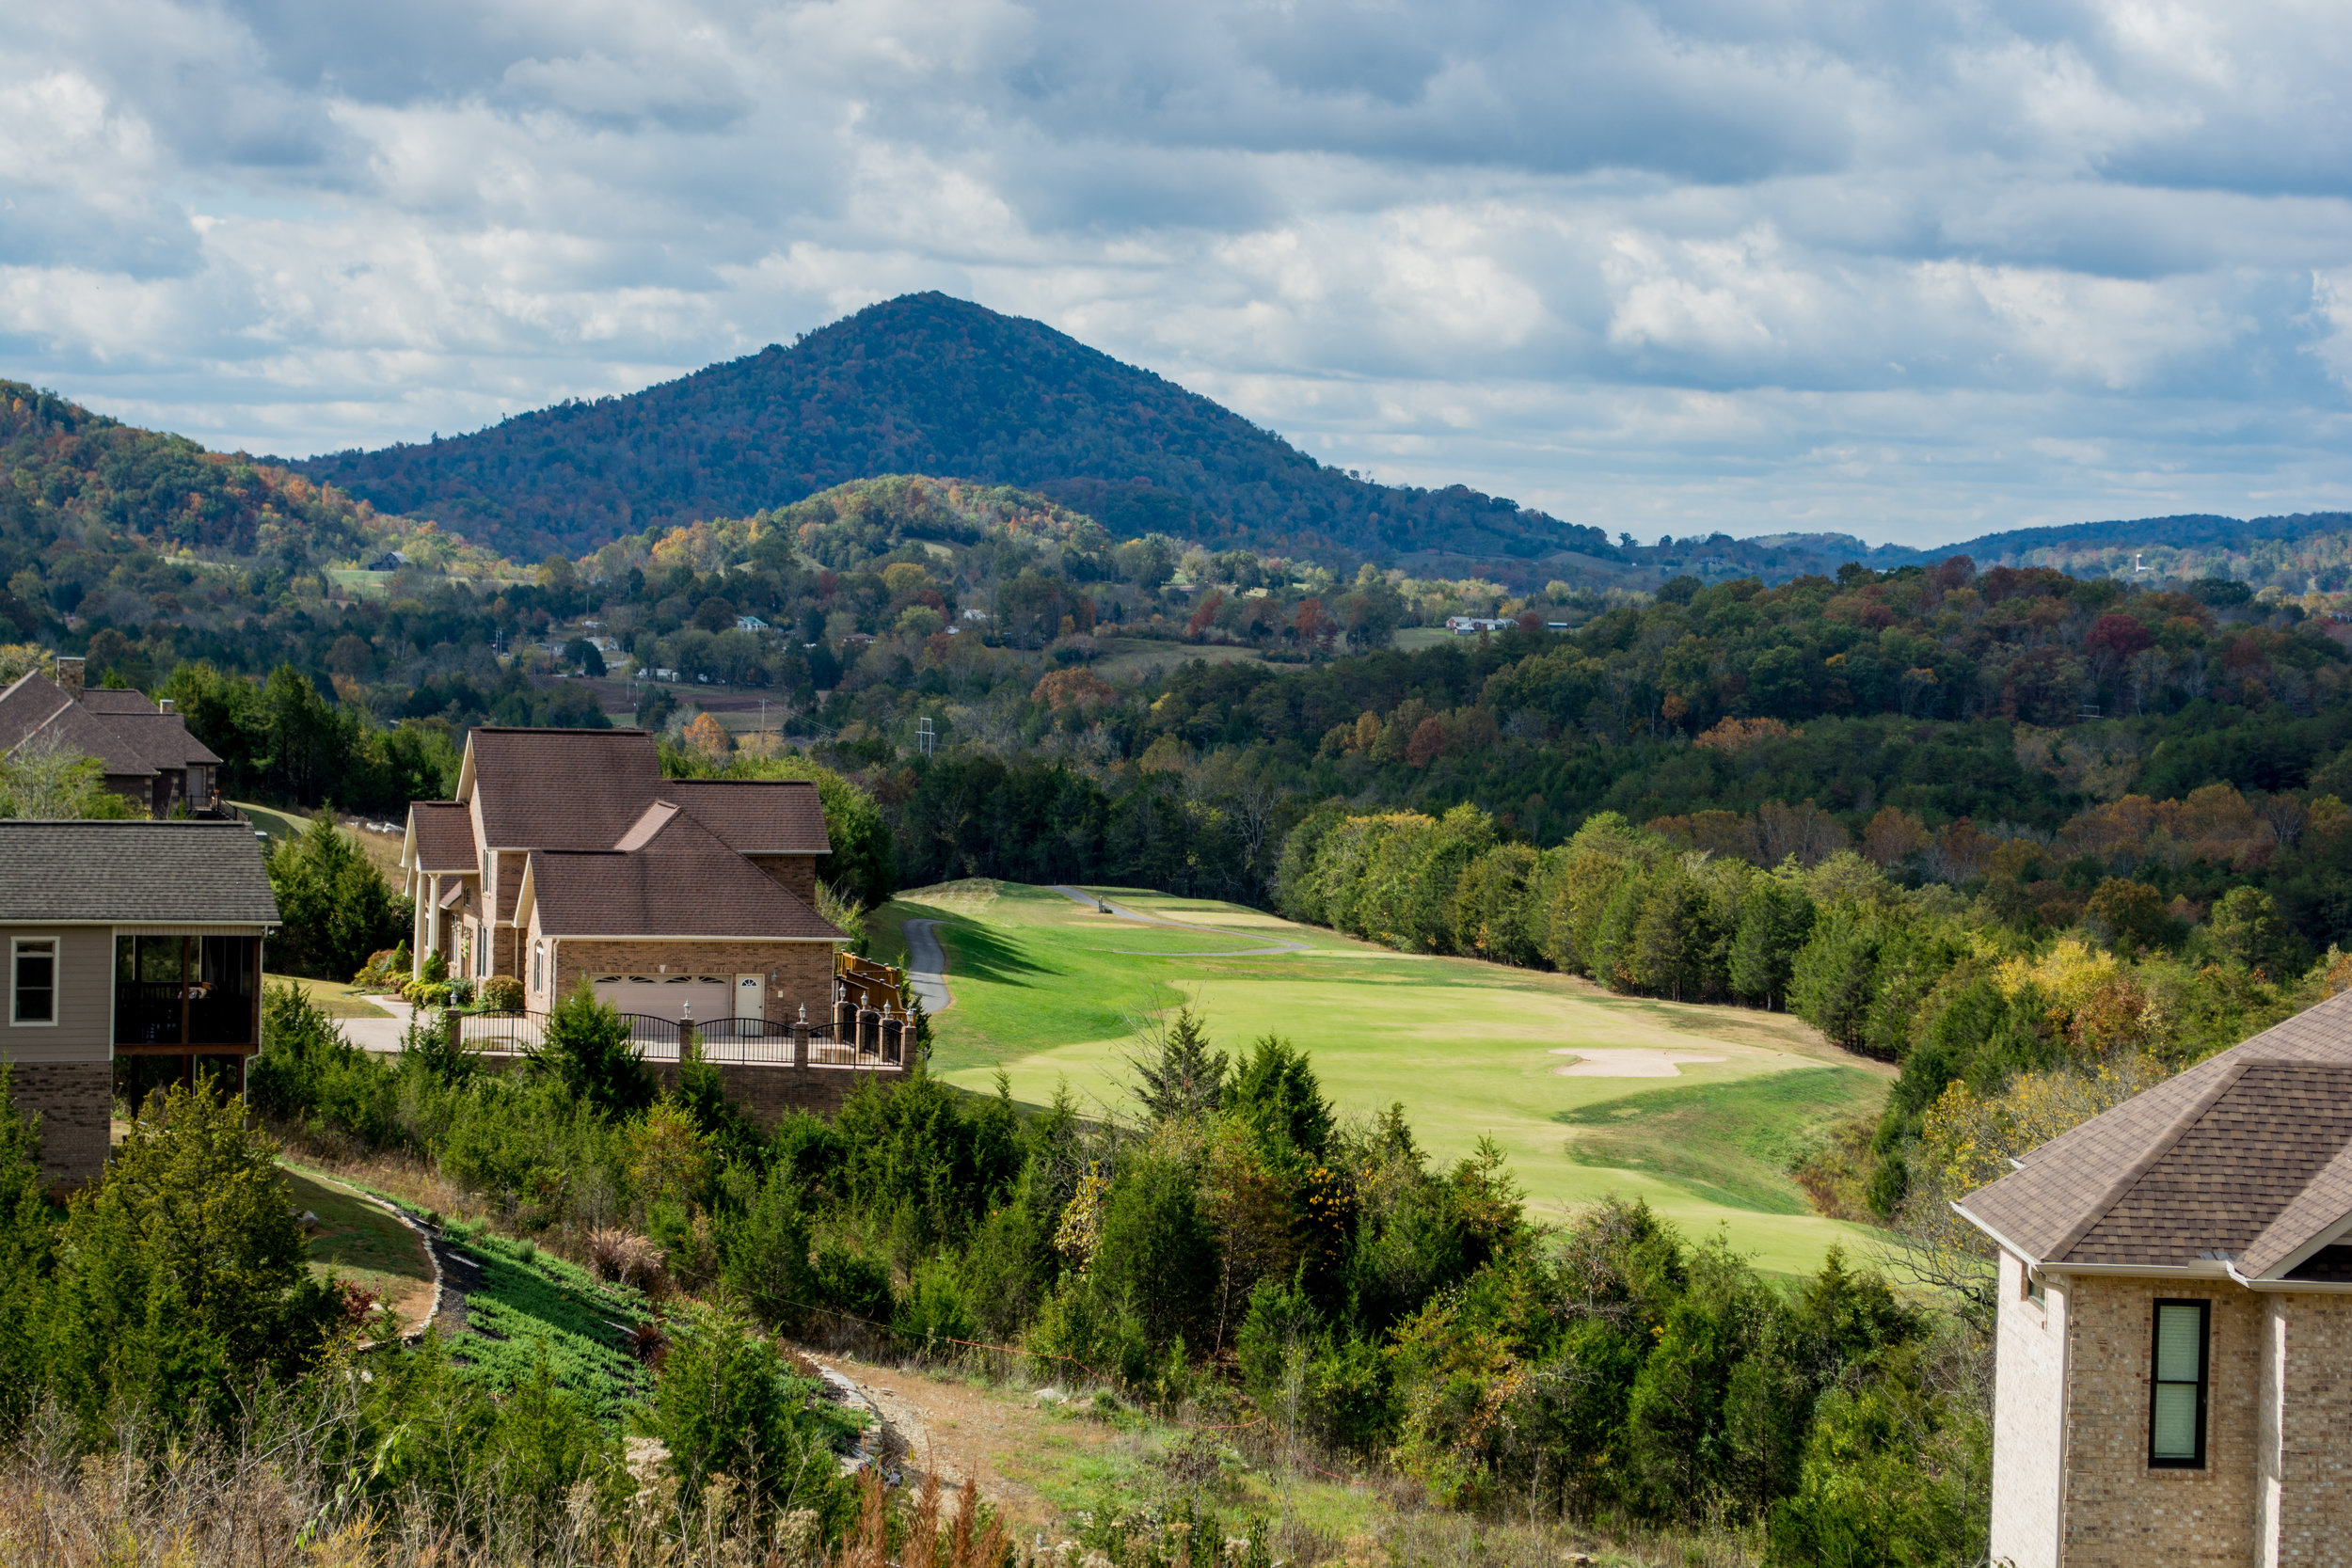 Woodlake-Mountain-Golf-Course-Views